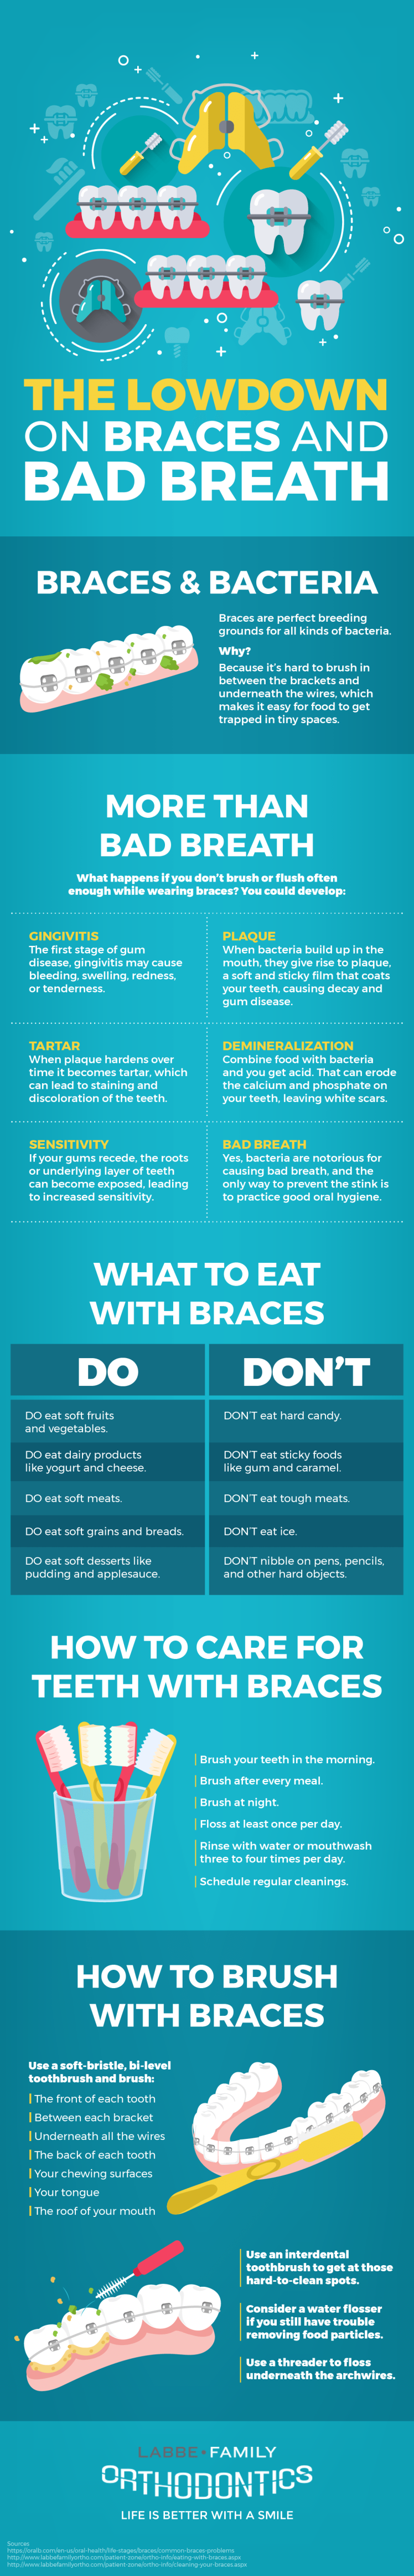 The Lowdown on Braces and Bad Breath Infographic